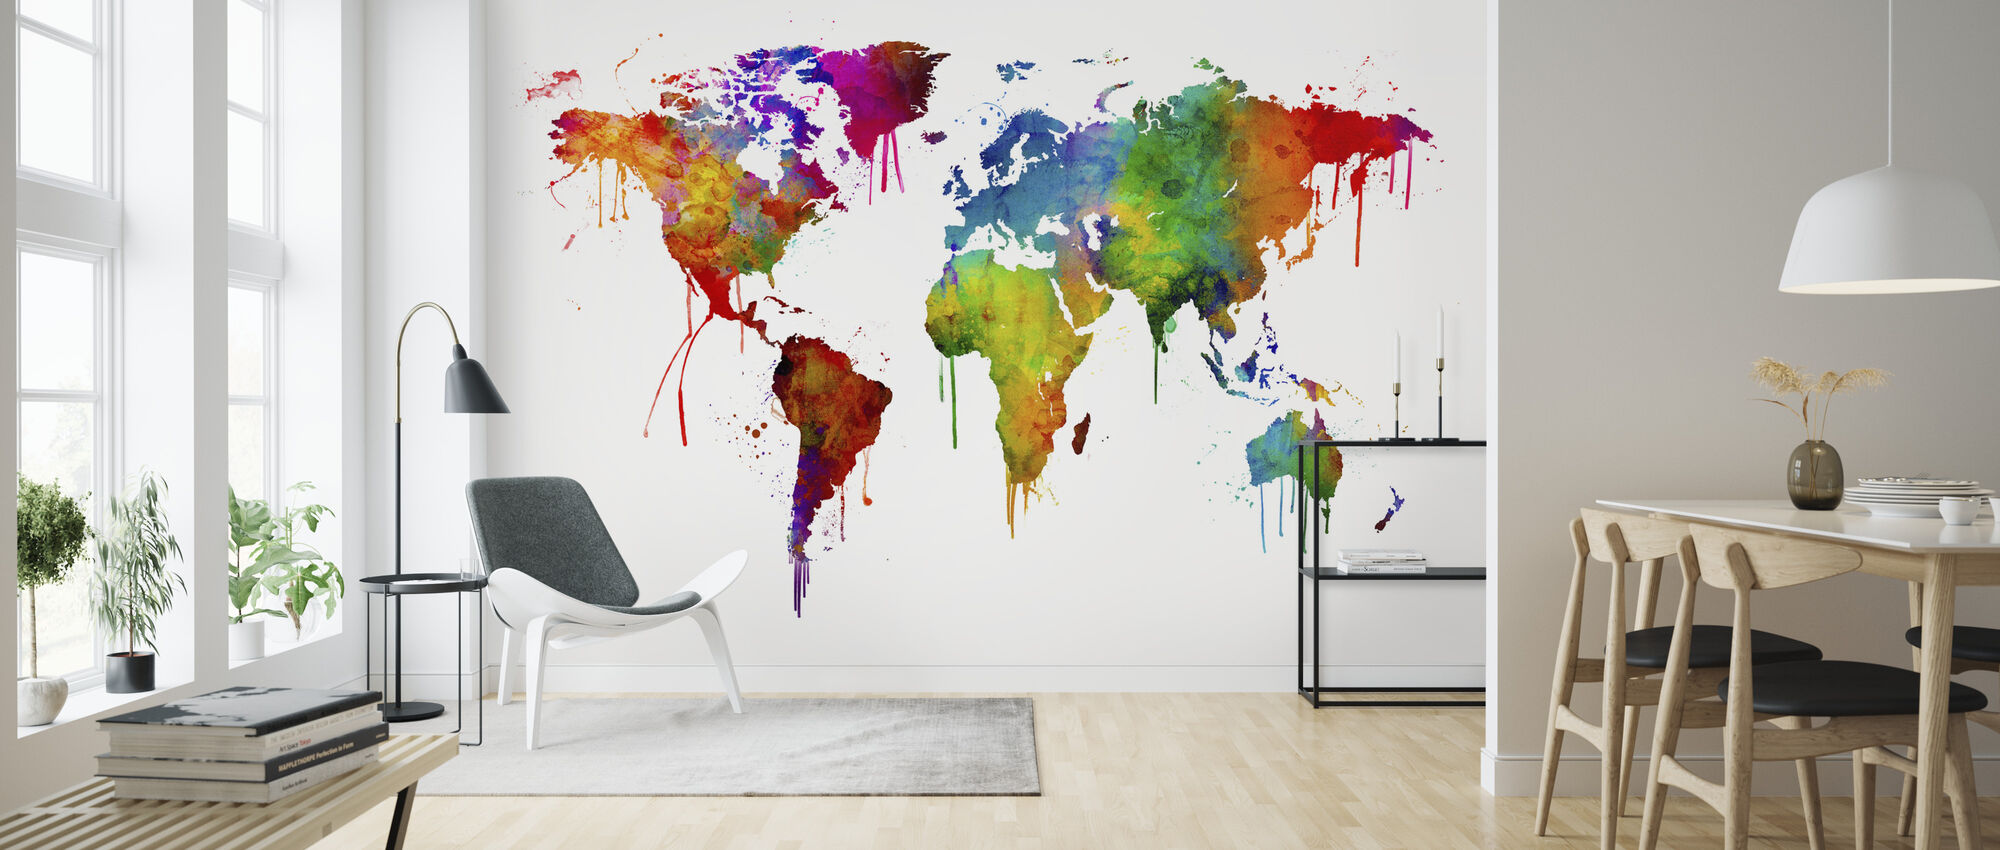 Watercolour World Map - Wallpaper - Living Room